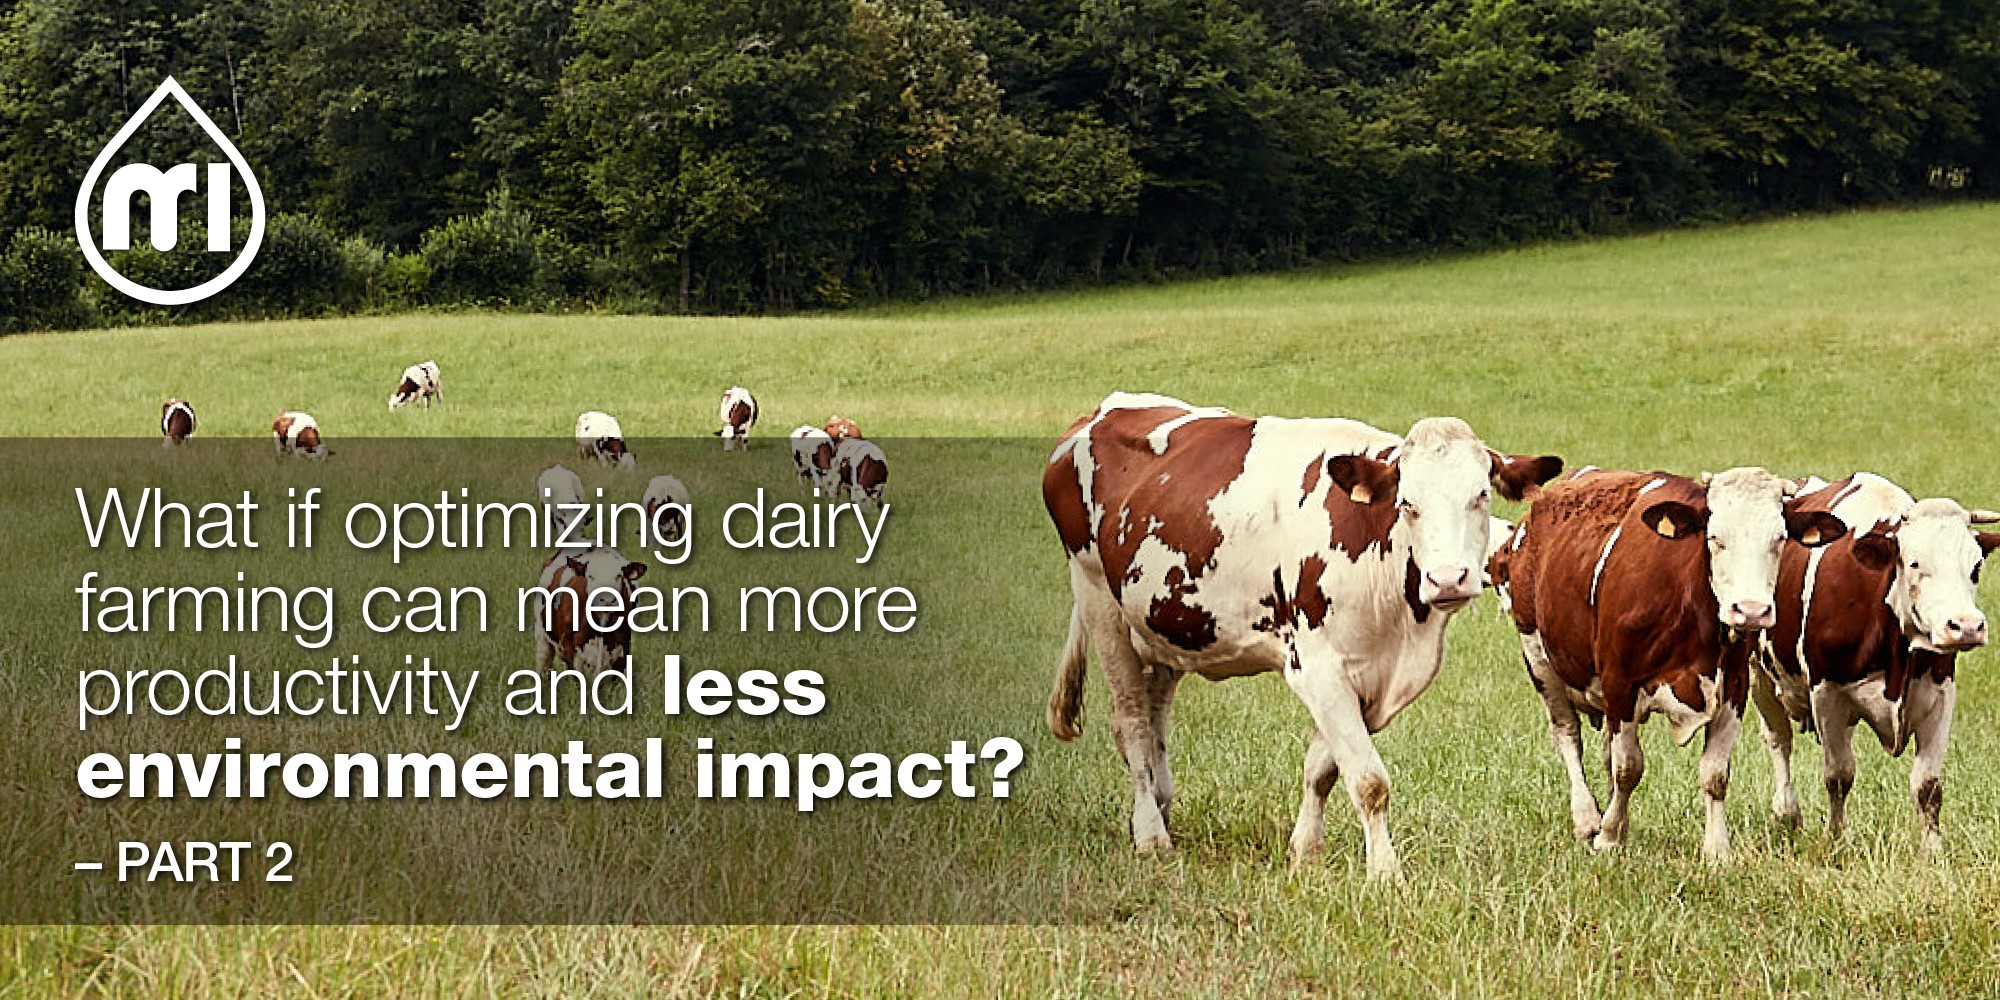 What if optimizing dairy farming can mean more productivity and less environmental impact? - Part 2